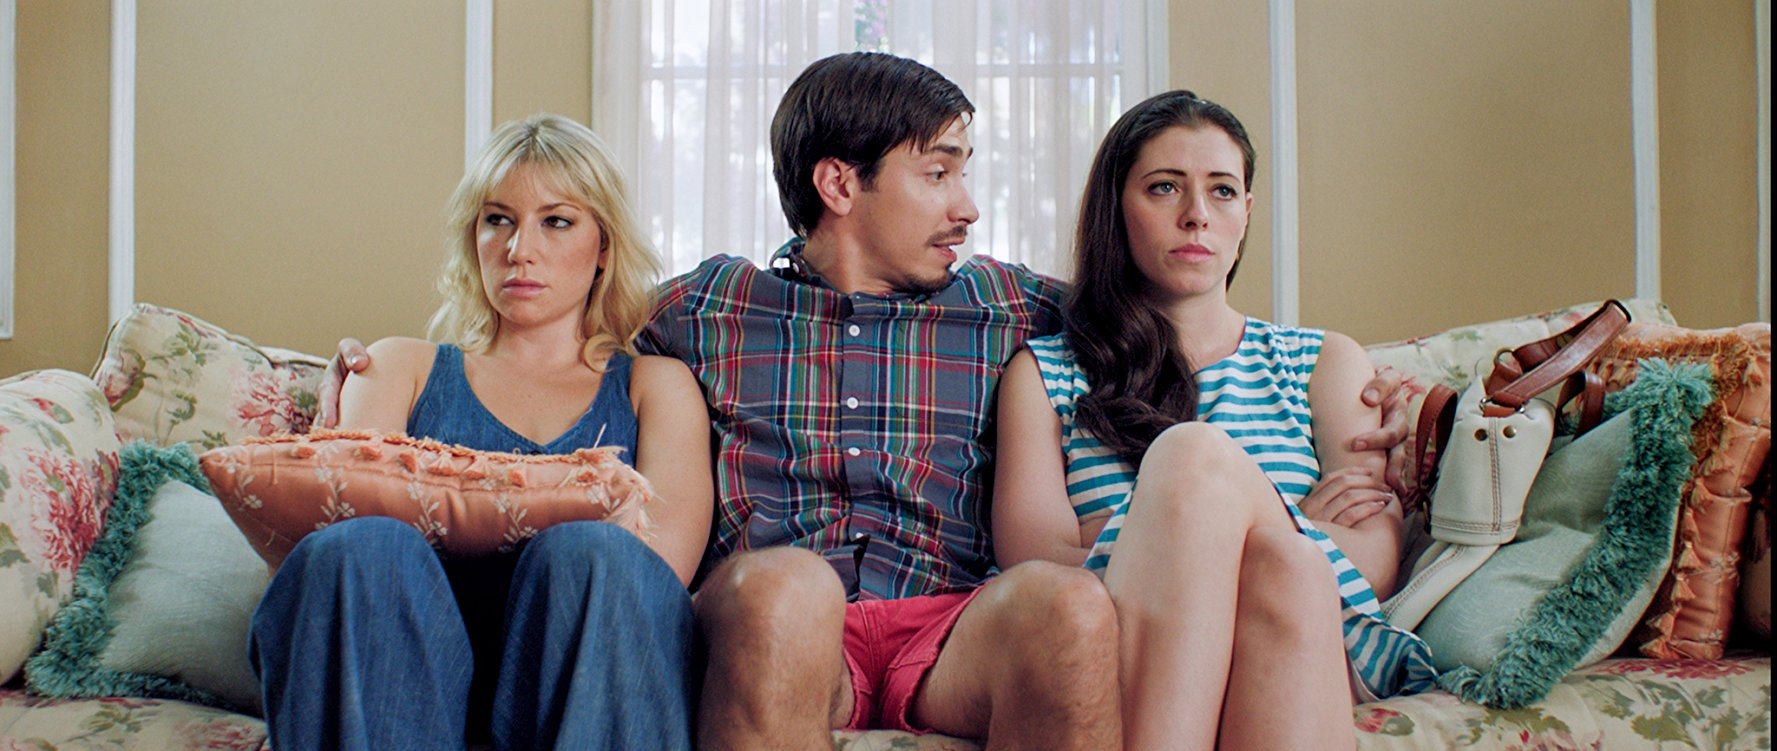 Lauren Miller along with Ari Graynor and Justin Long on the set of For a Good Time, Call....